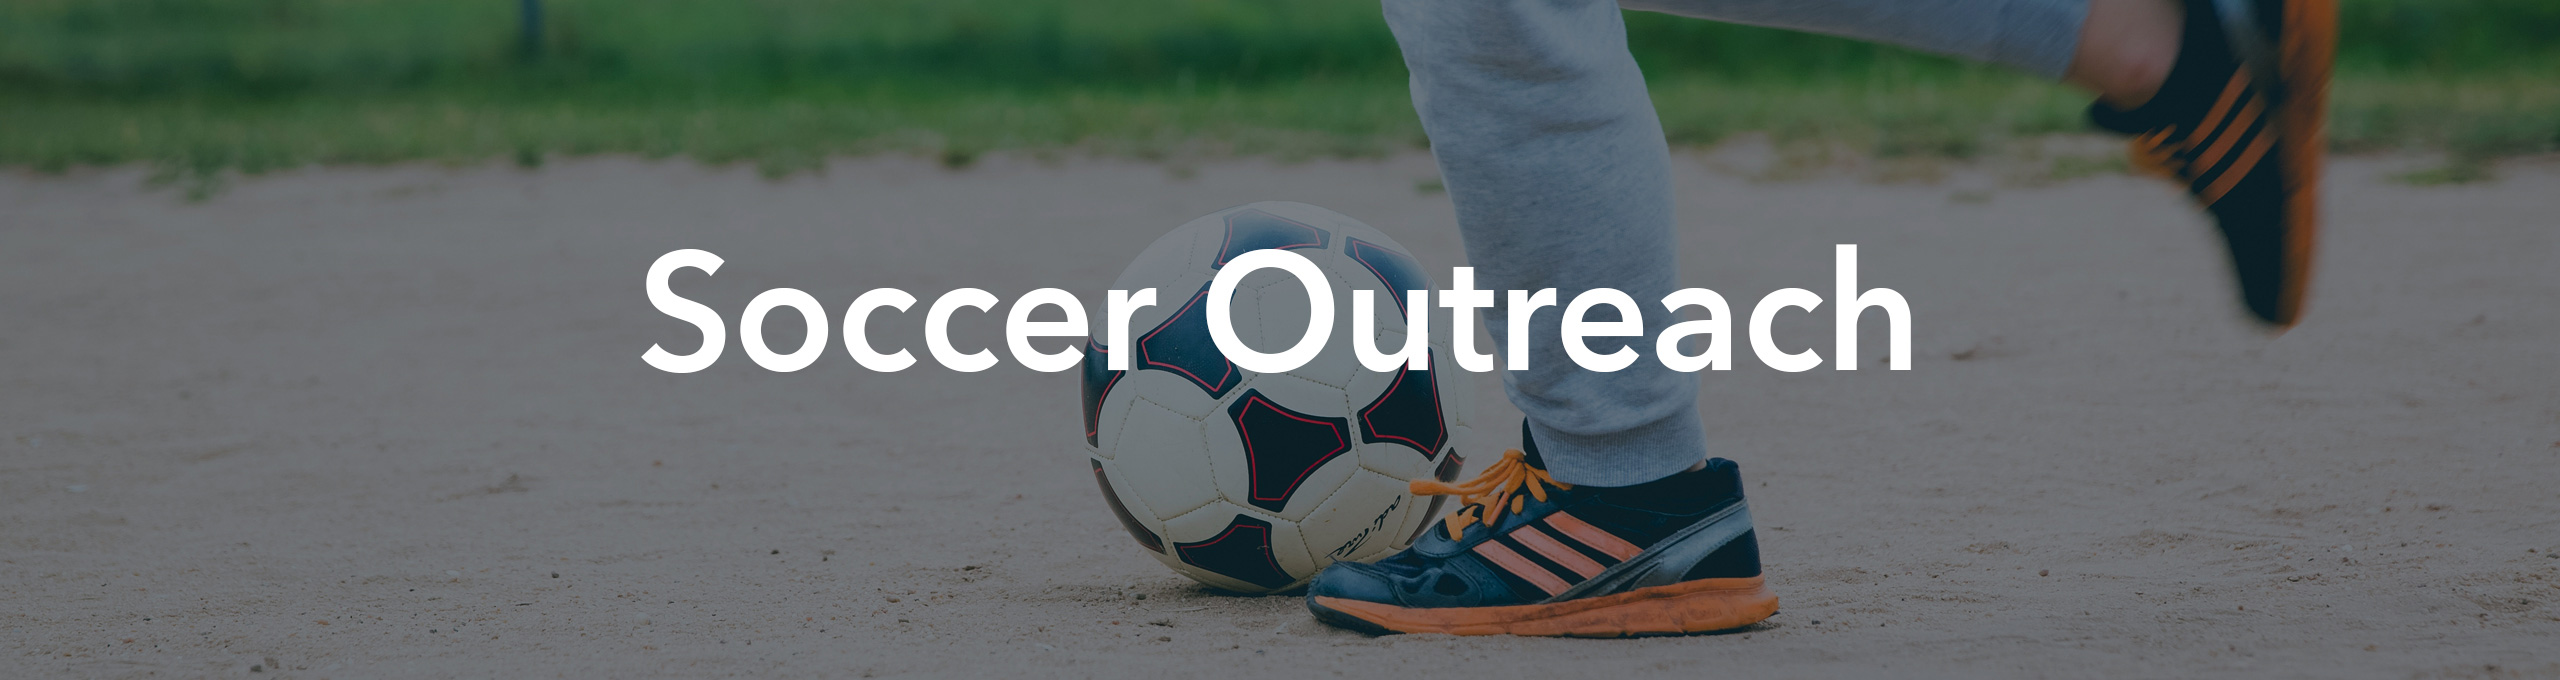 Soccer Outreach